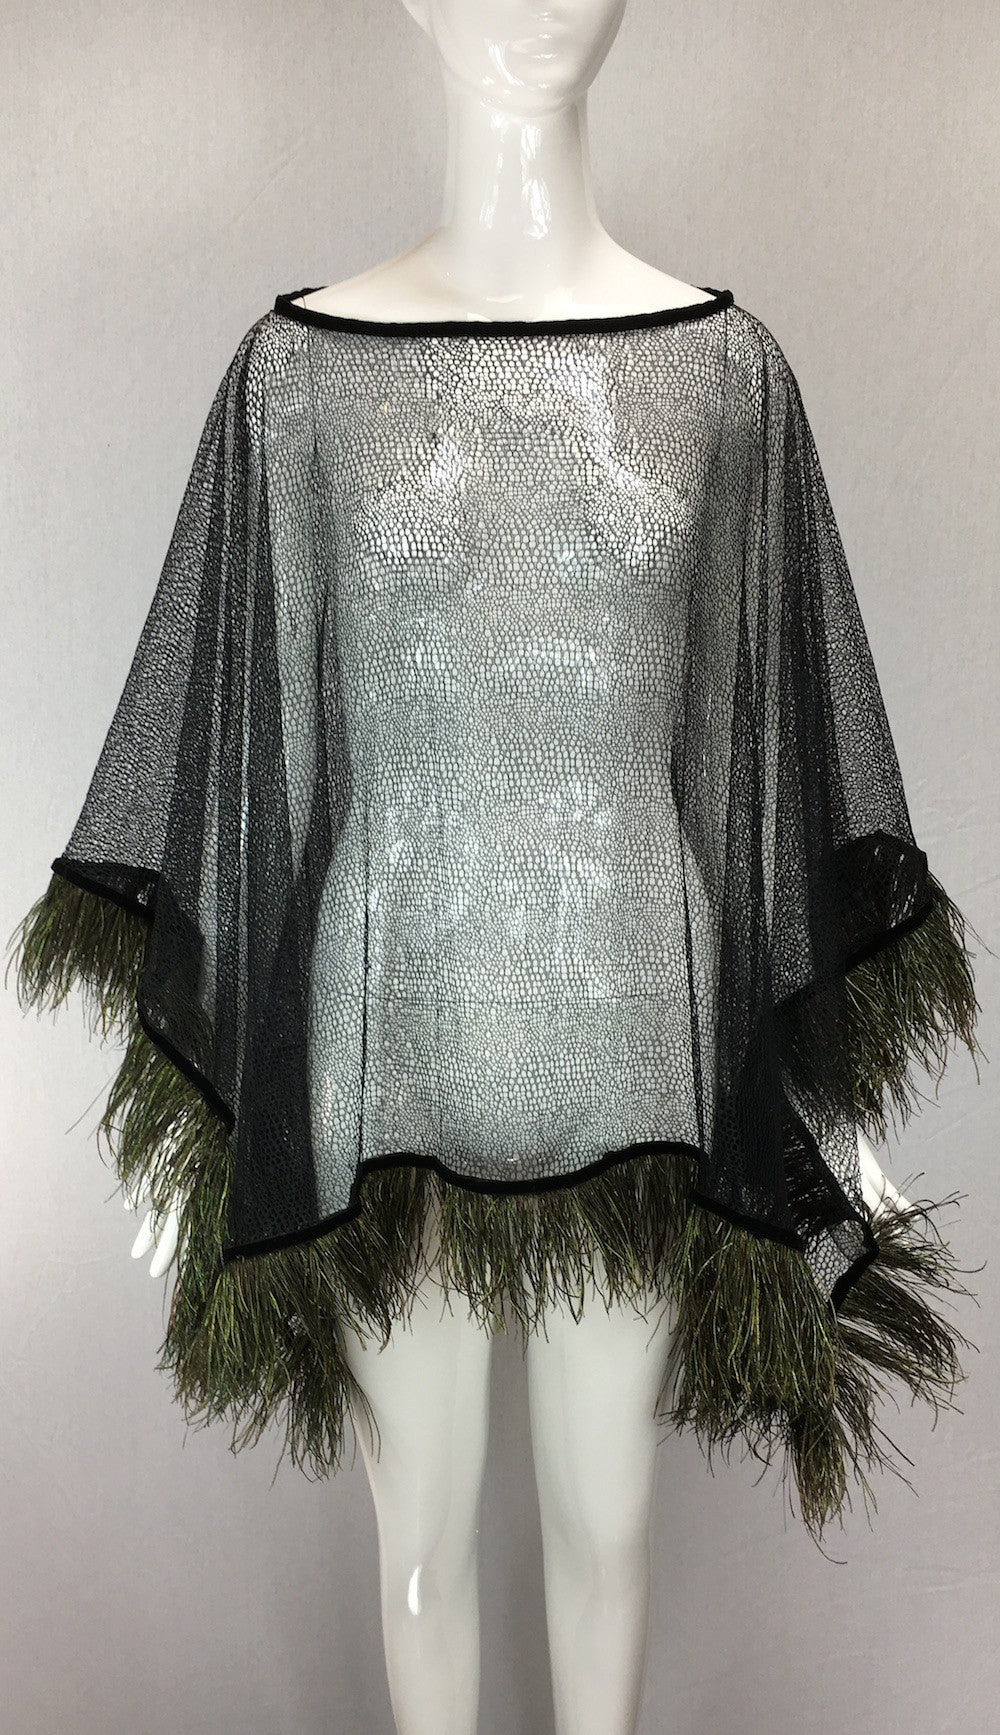 Janet Deleuse Designer Lace and Feather Poncho, SALE, SOLD